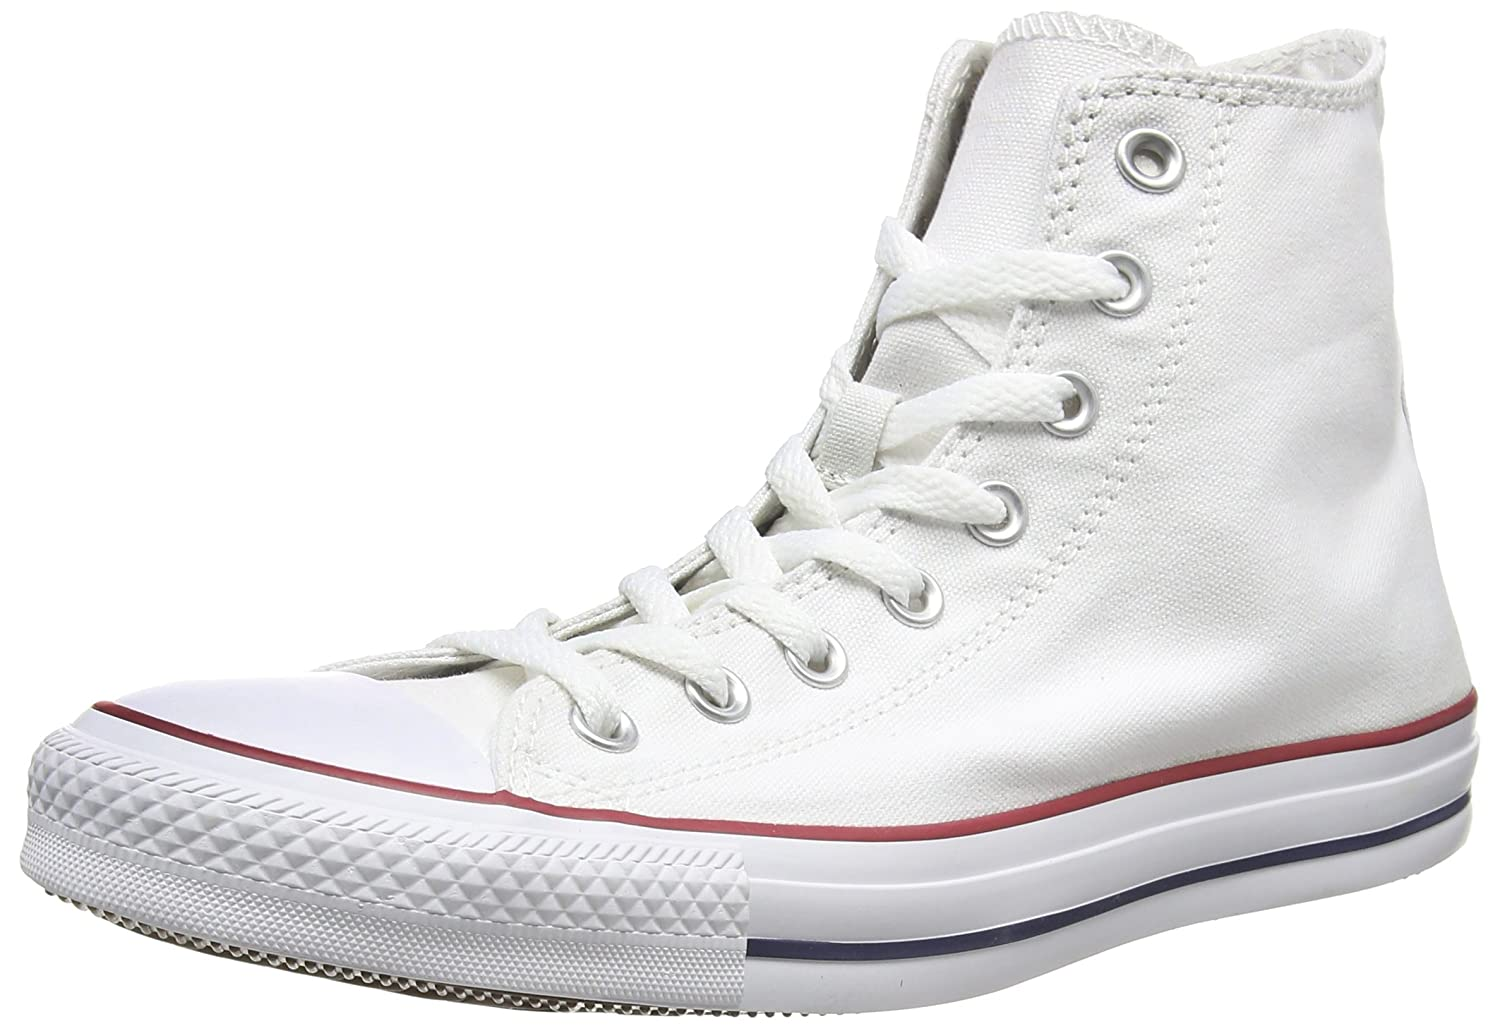 Converse Unisex Chuck Taylor All-Star High-Top Casual Sneakers in Classic Style and Color and Durable Canvas Uppers B01M0GJ5KF 39-40 M EU / 8.5 B(M) US Women / 6.5 D(M) US Men|Optical White